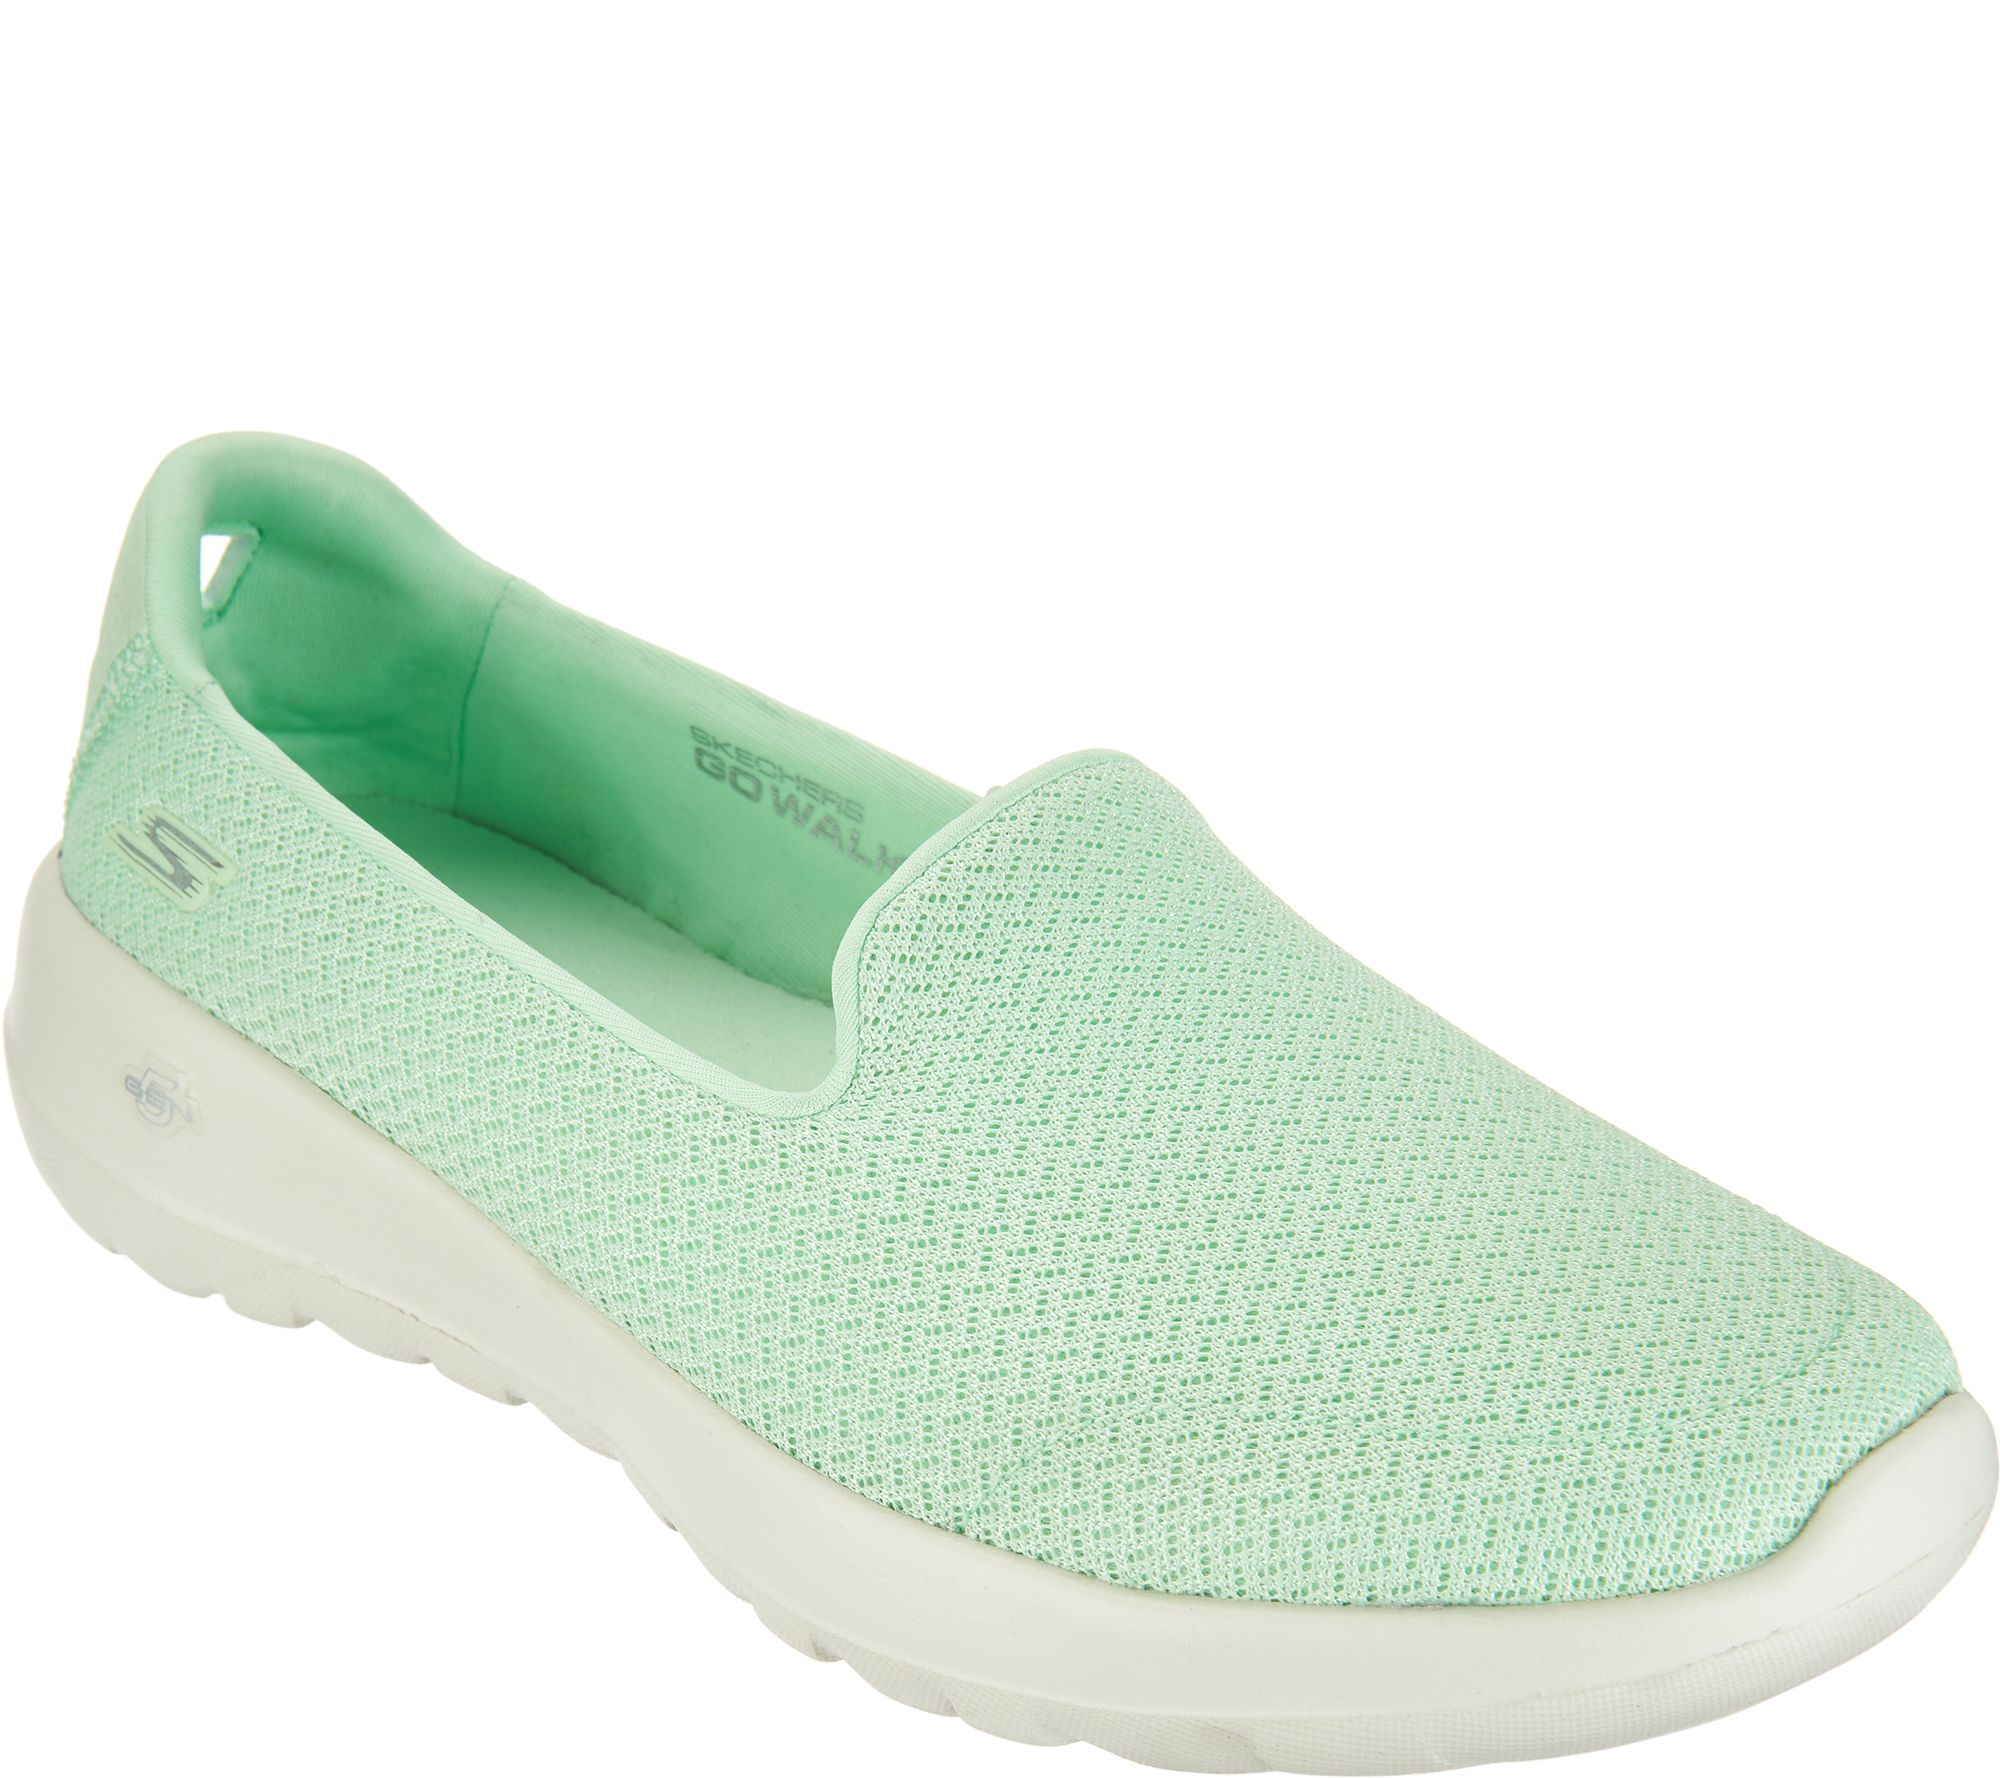 5c513be72345 Skechers GO Walk Joy Slip-on Shoes - Radiant - Page 1 — QVC.com